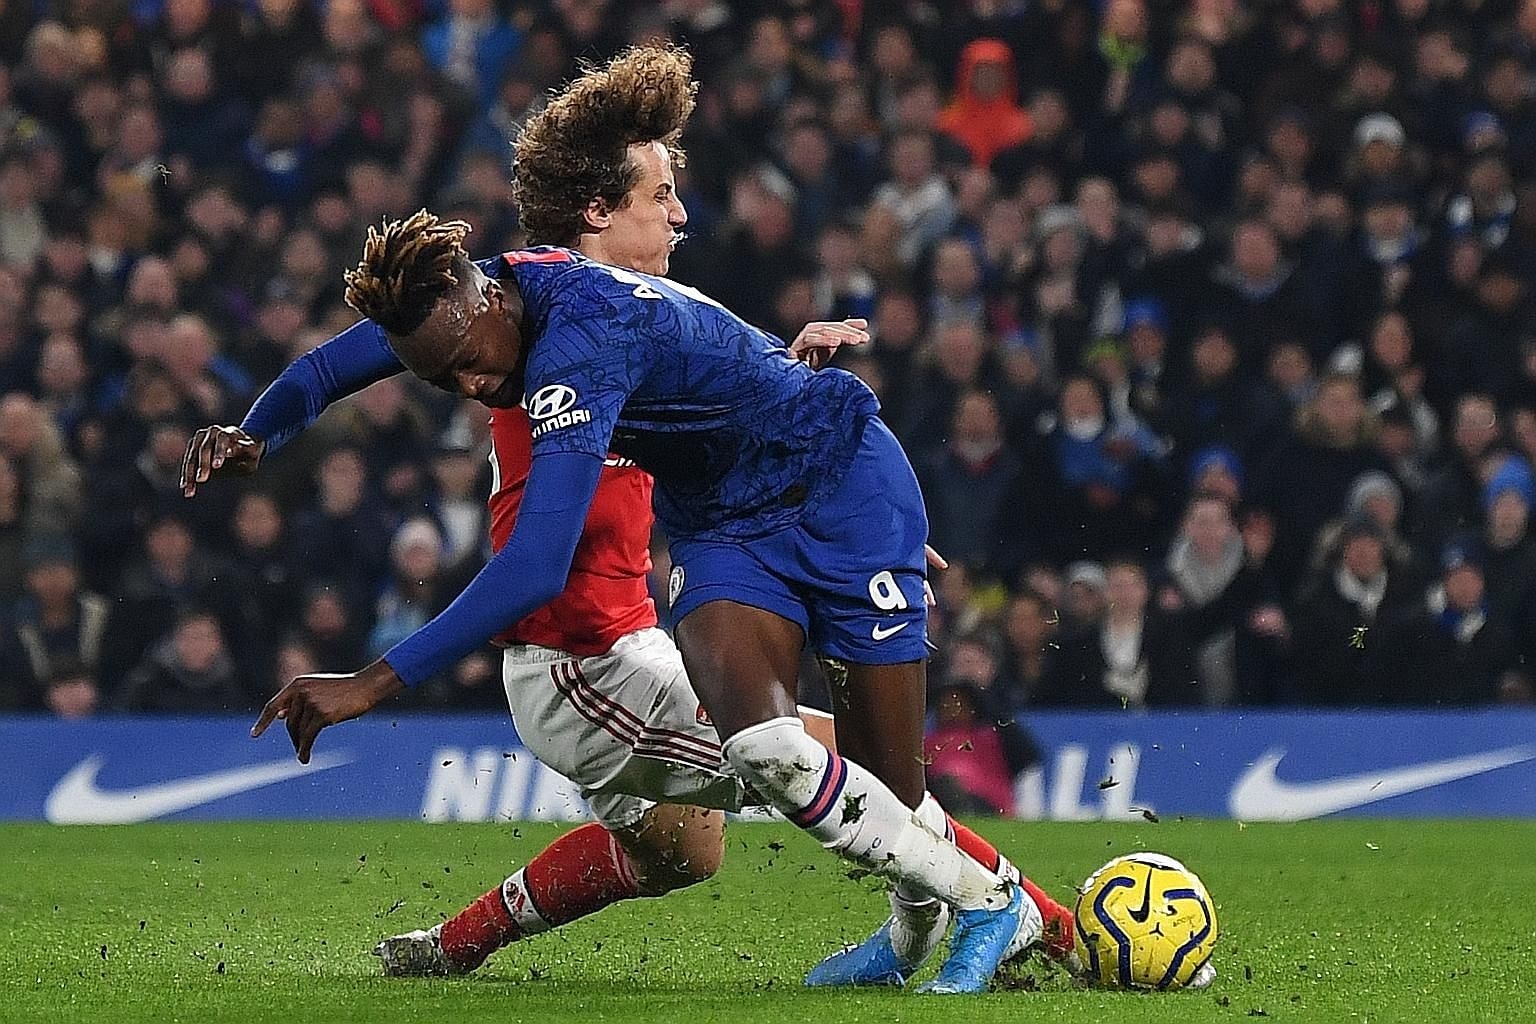 Arsenal defender David Luiz fouling Chelsea striker Tammy Abraham to concede a penalty and earn a red card on his return to Stamford Bridge on Tuesday night. Jorginho put the Blues in the lead from the spot but the Gunners equalised twice in the 2-2